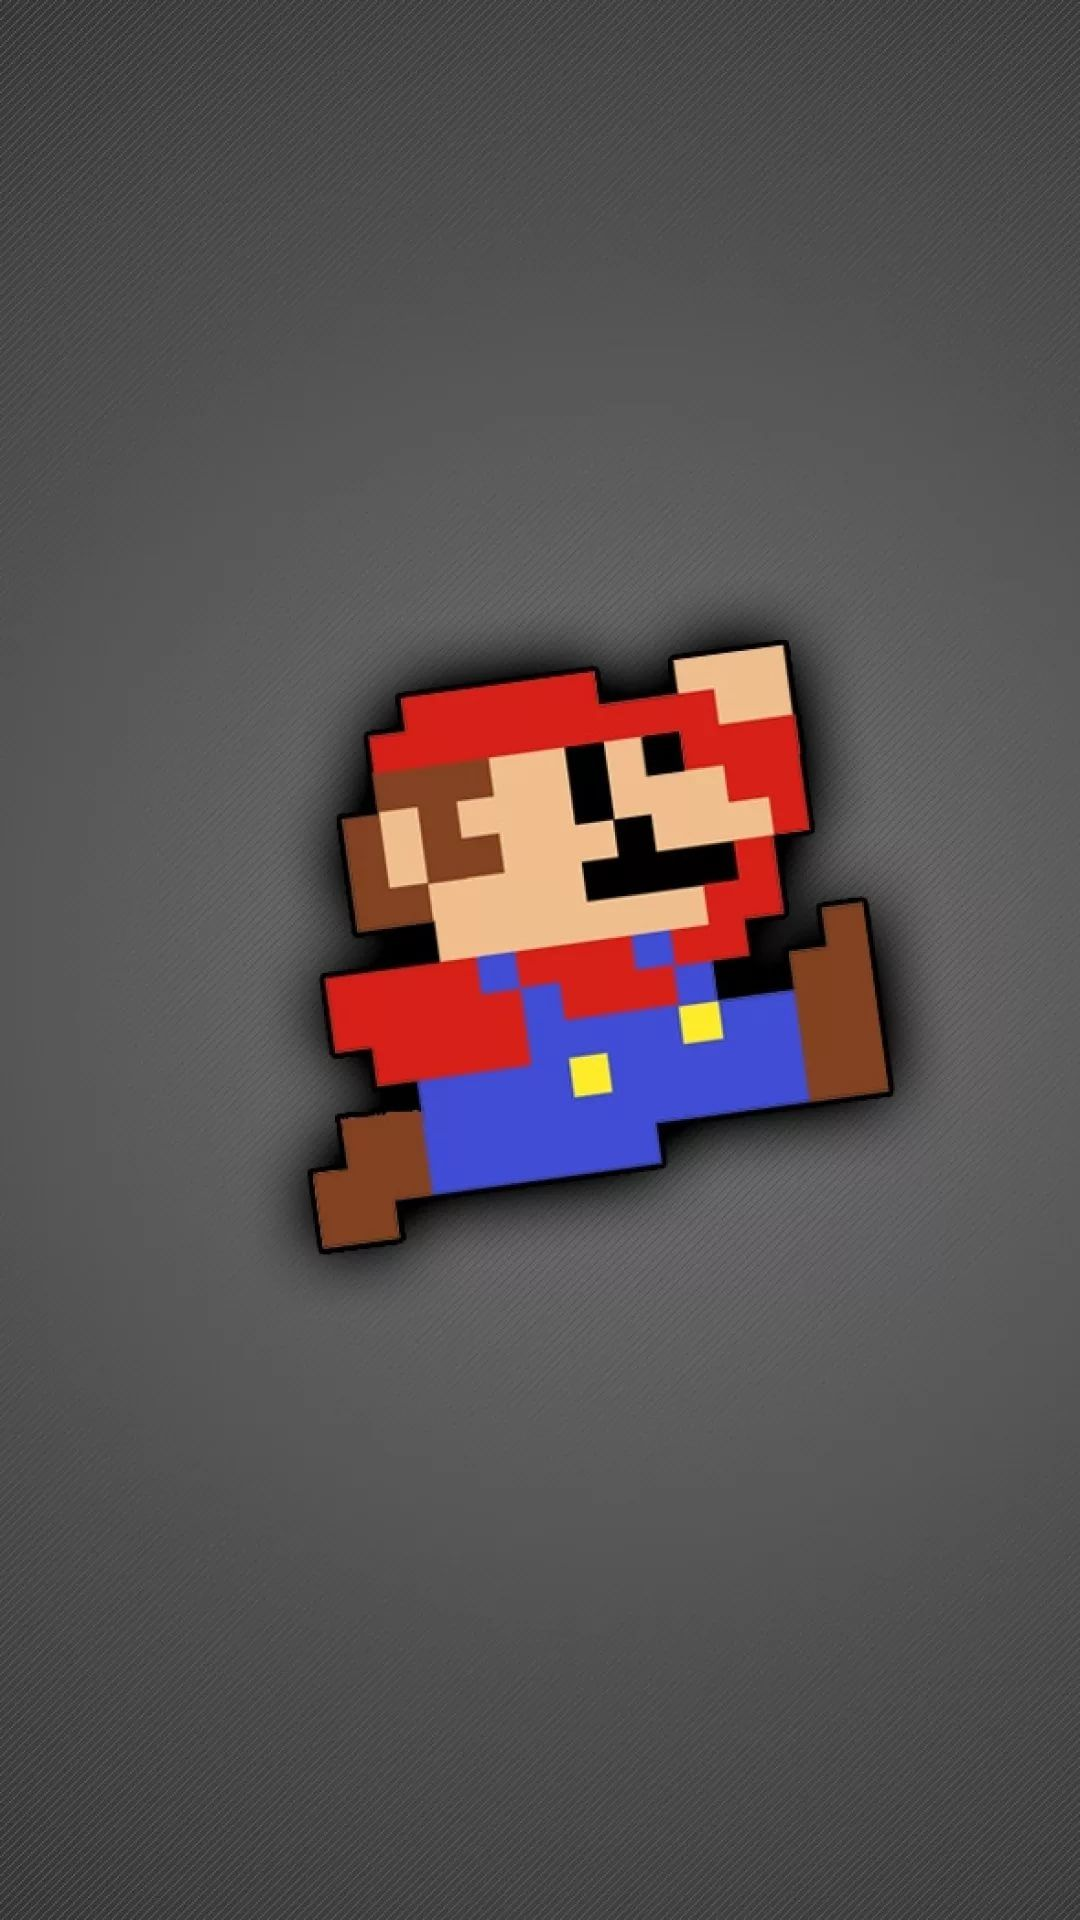 Mario iPhone hd wallpaper